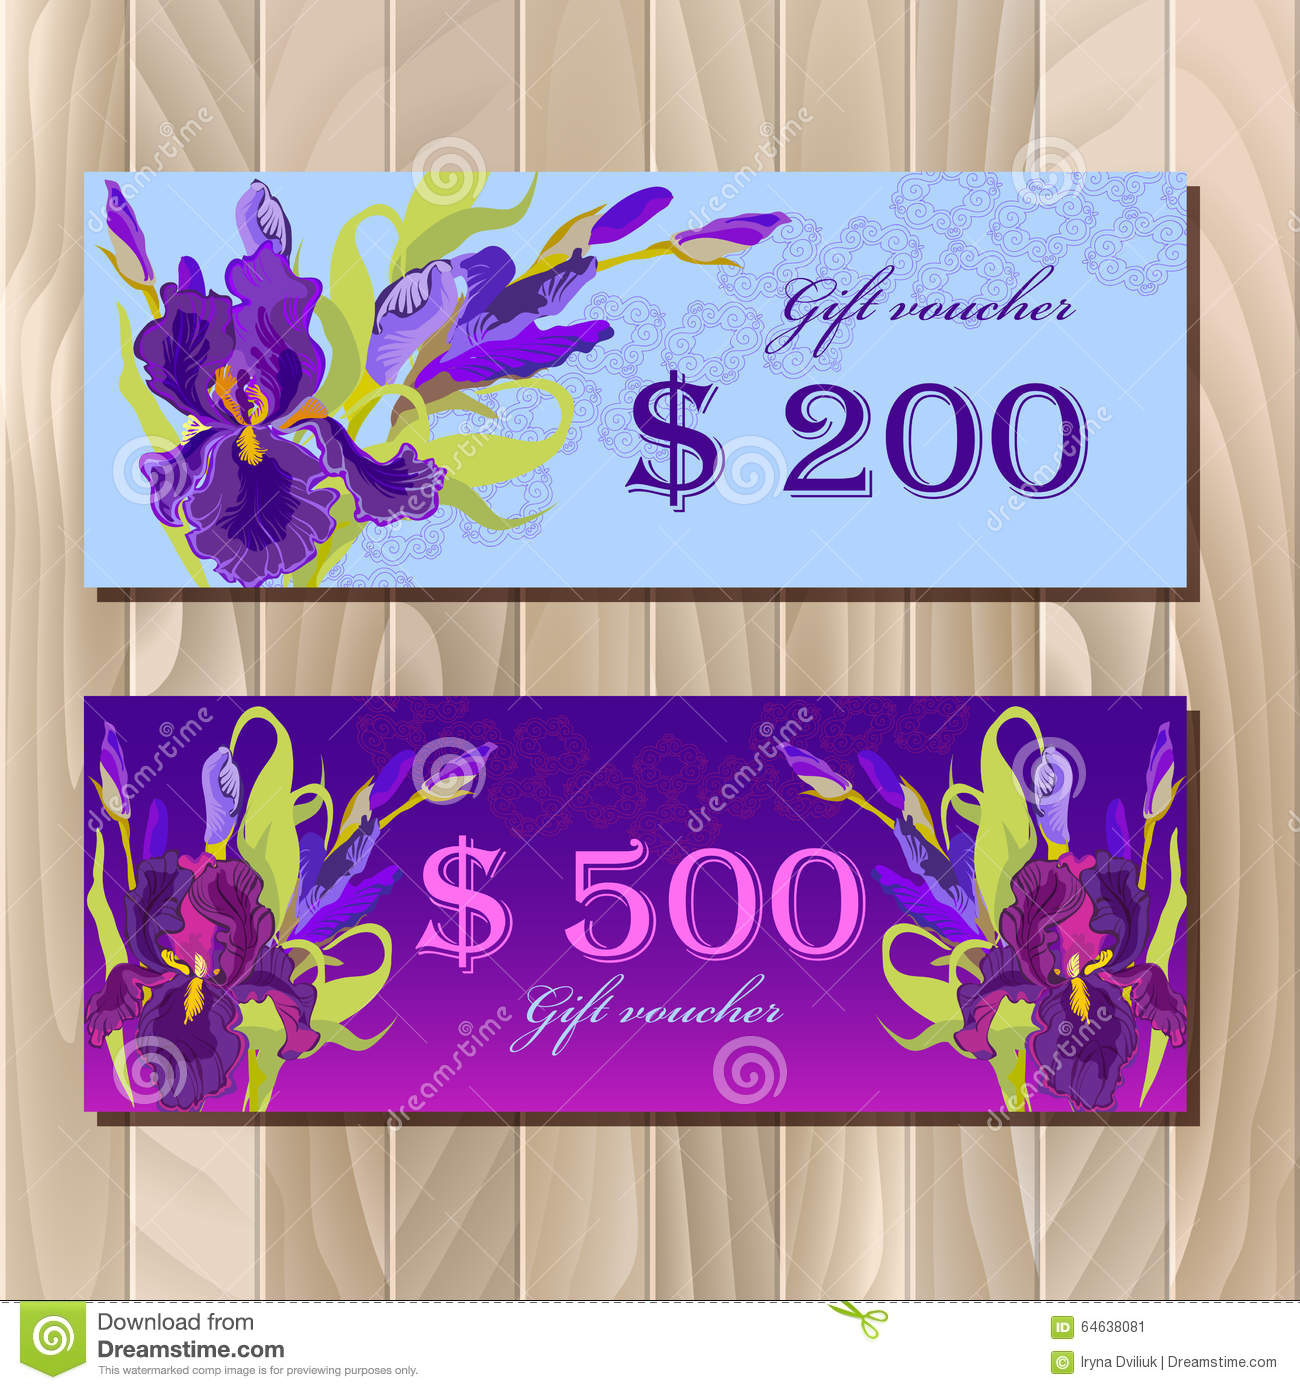 gift certificate printable card template with purple iris flower design stock vector. Black Bedroom Furniture Sets. Home Design Ideas